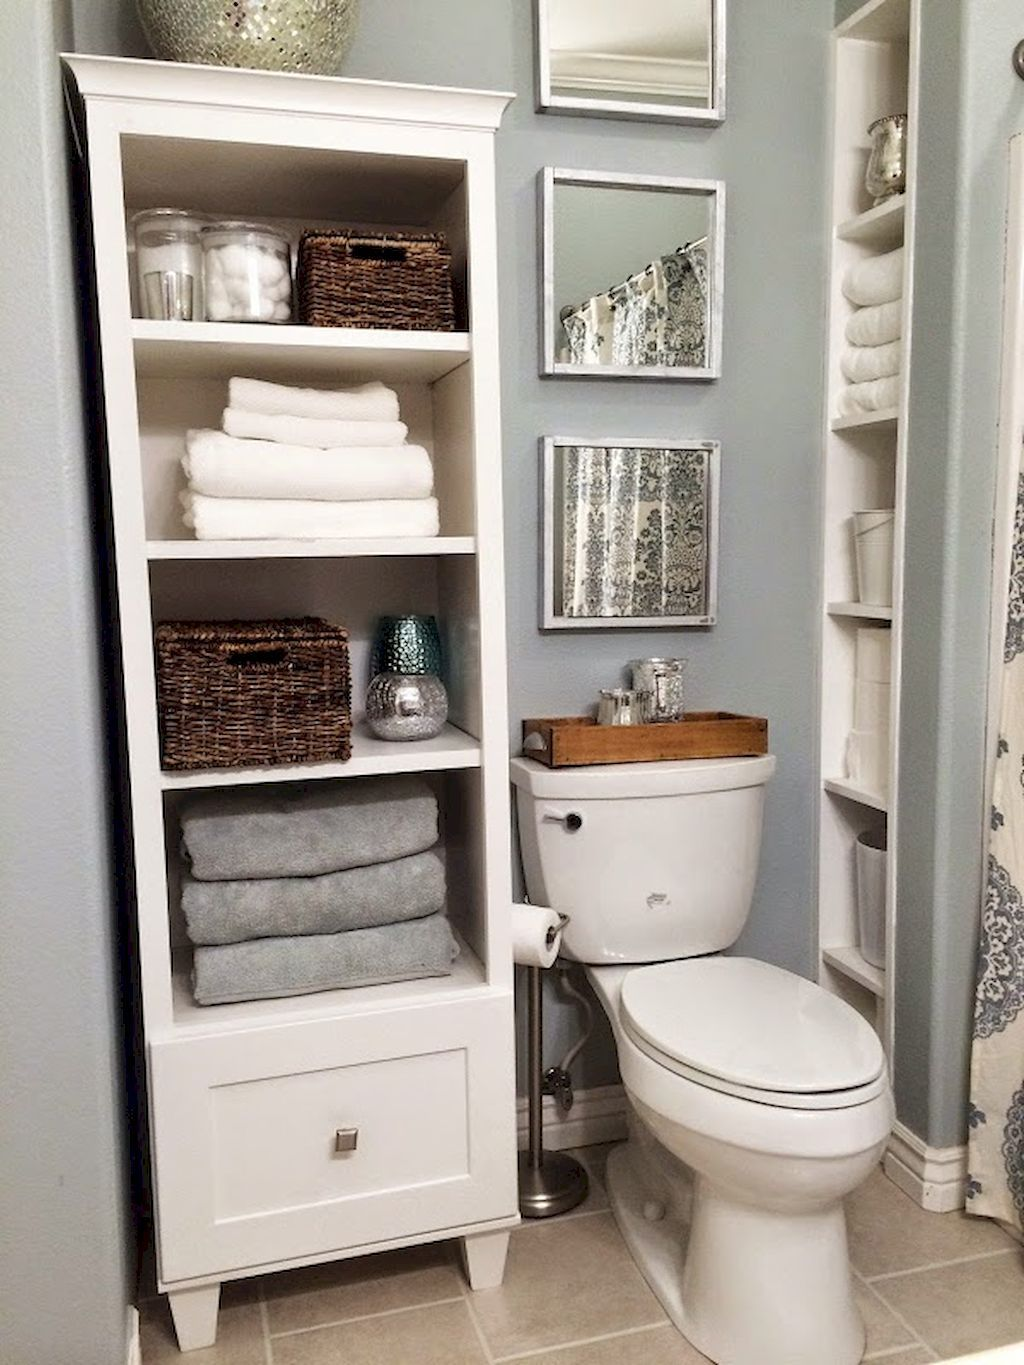 Functional Bathroom Storage And Space Saving Ideas Bathroom - Space saving ideas for small bathrooms